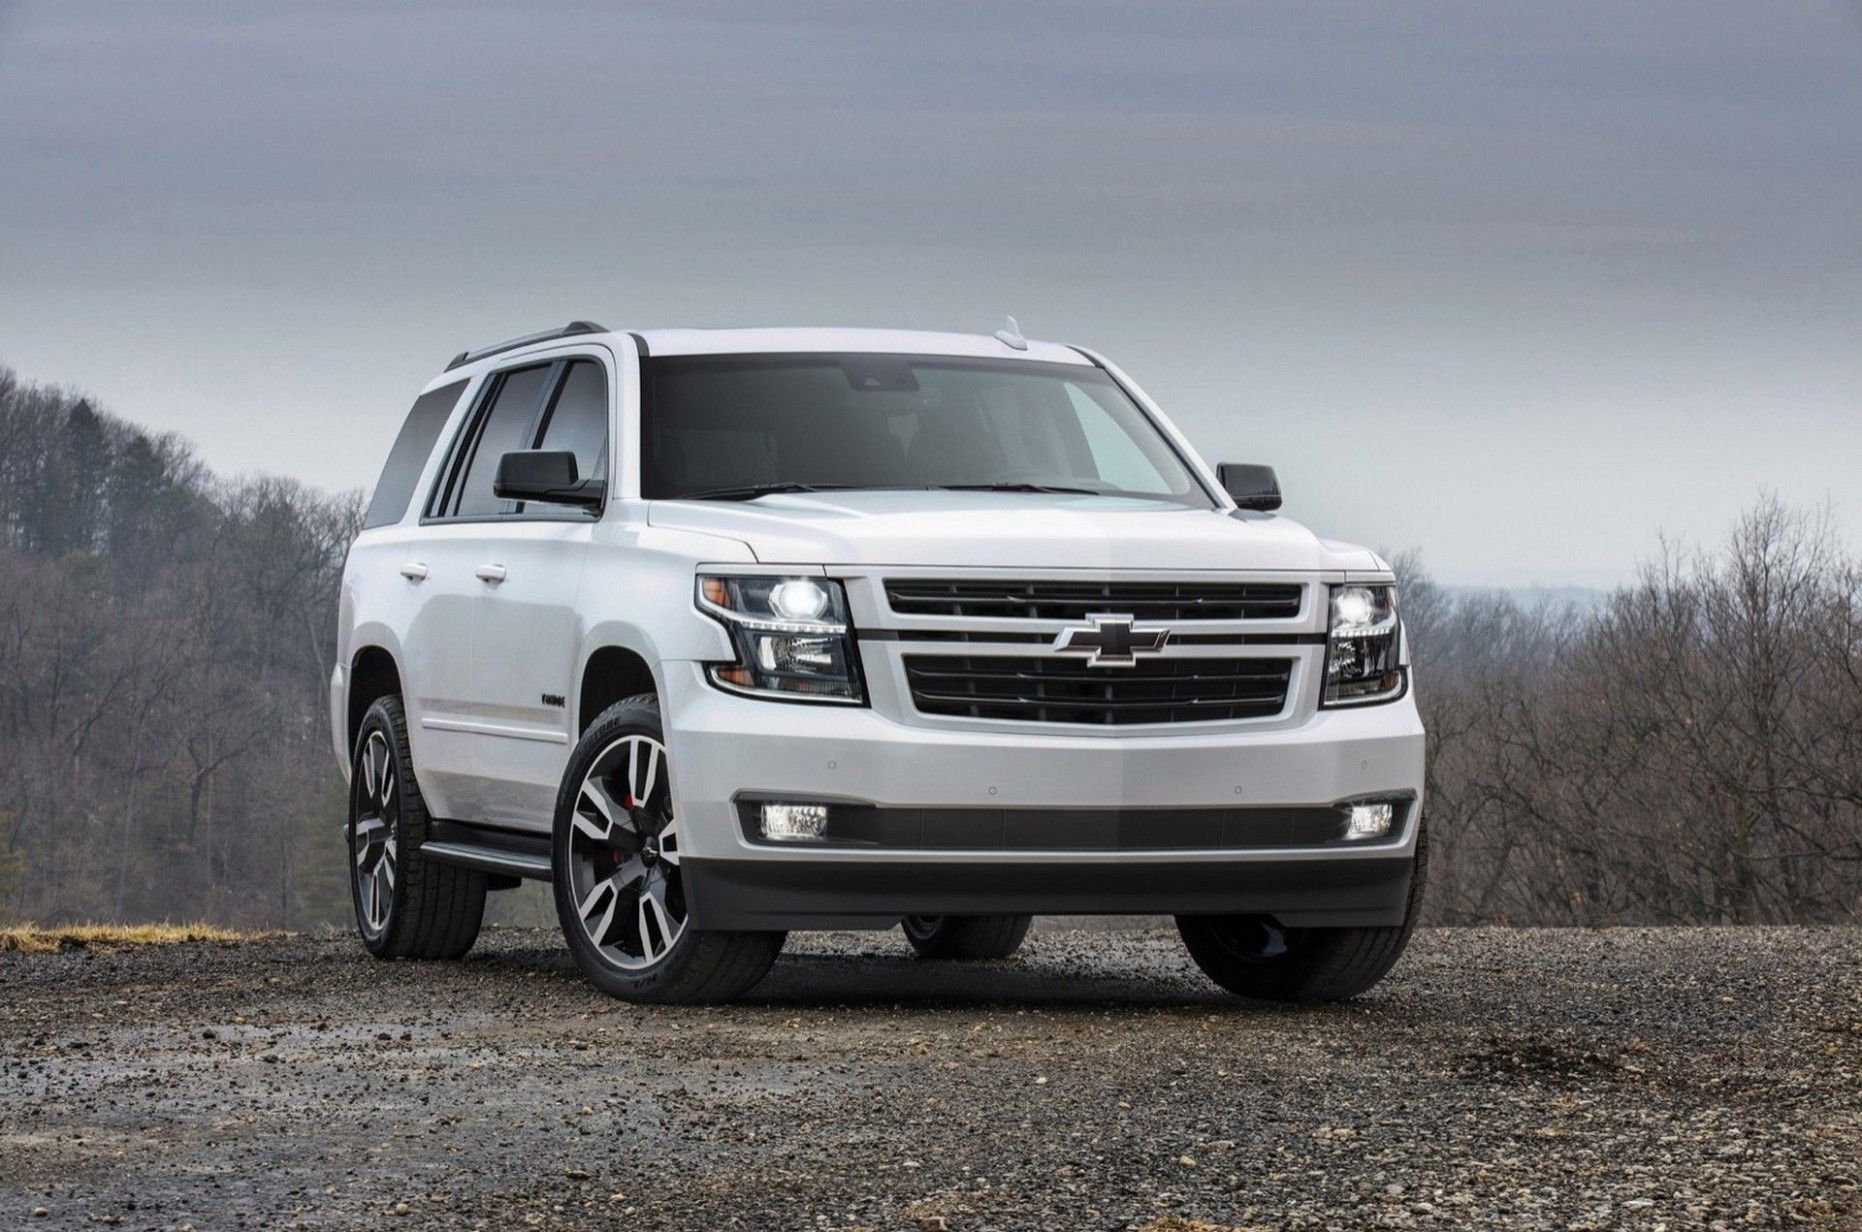 2020 Chevy Suburban Z71 Price Design And Review Di 2020